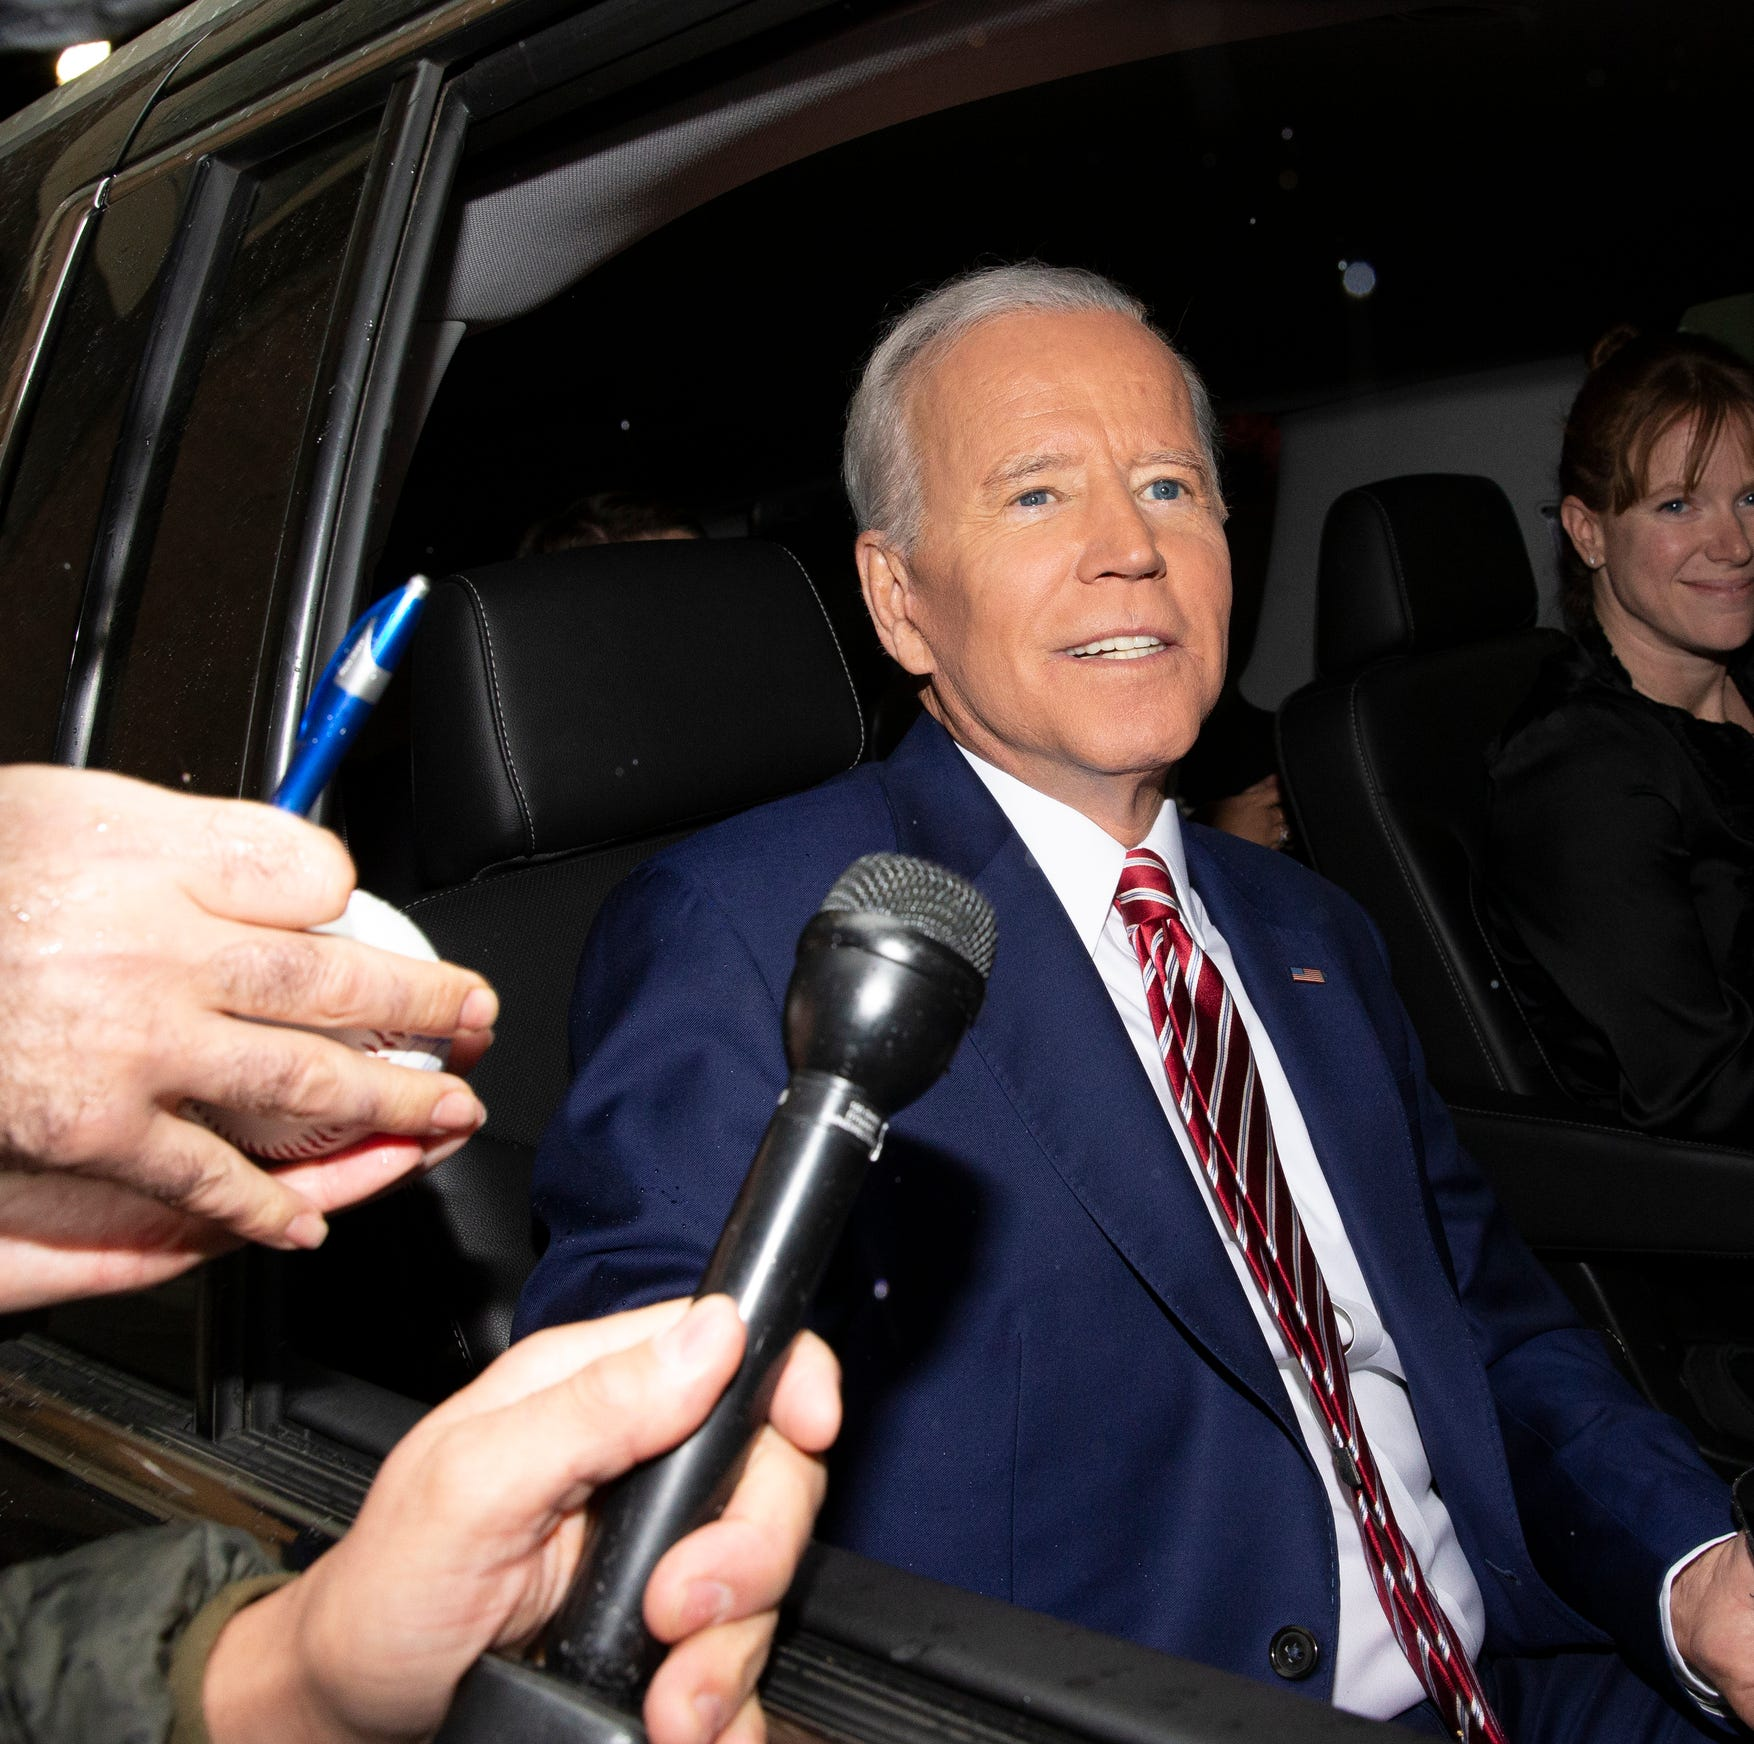 Democratic rivals take swipes at Biden after his entry into race for 2020 nomination